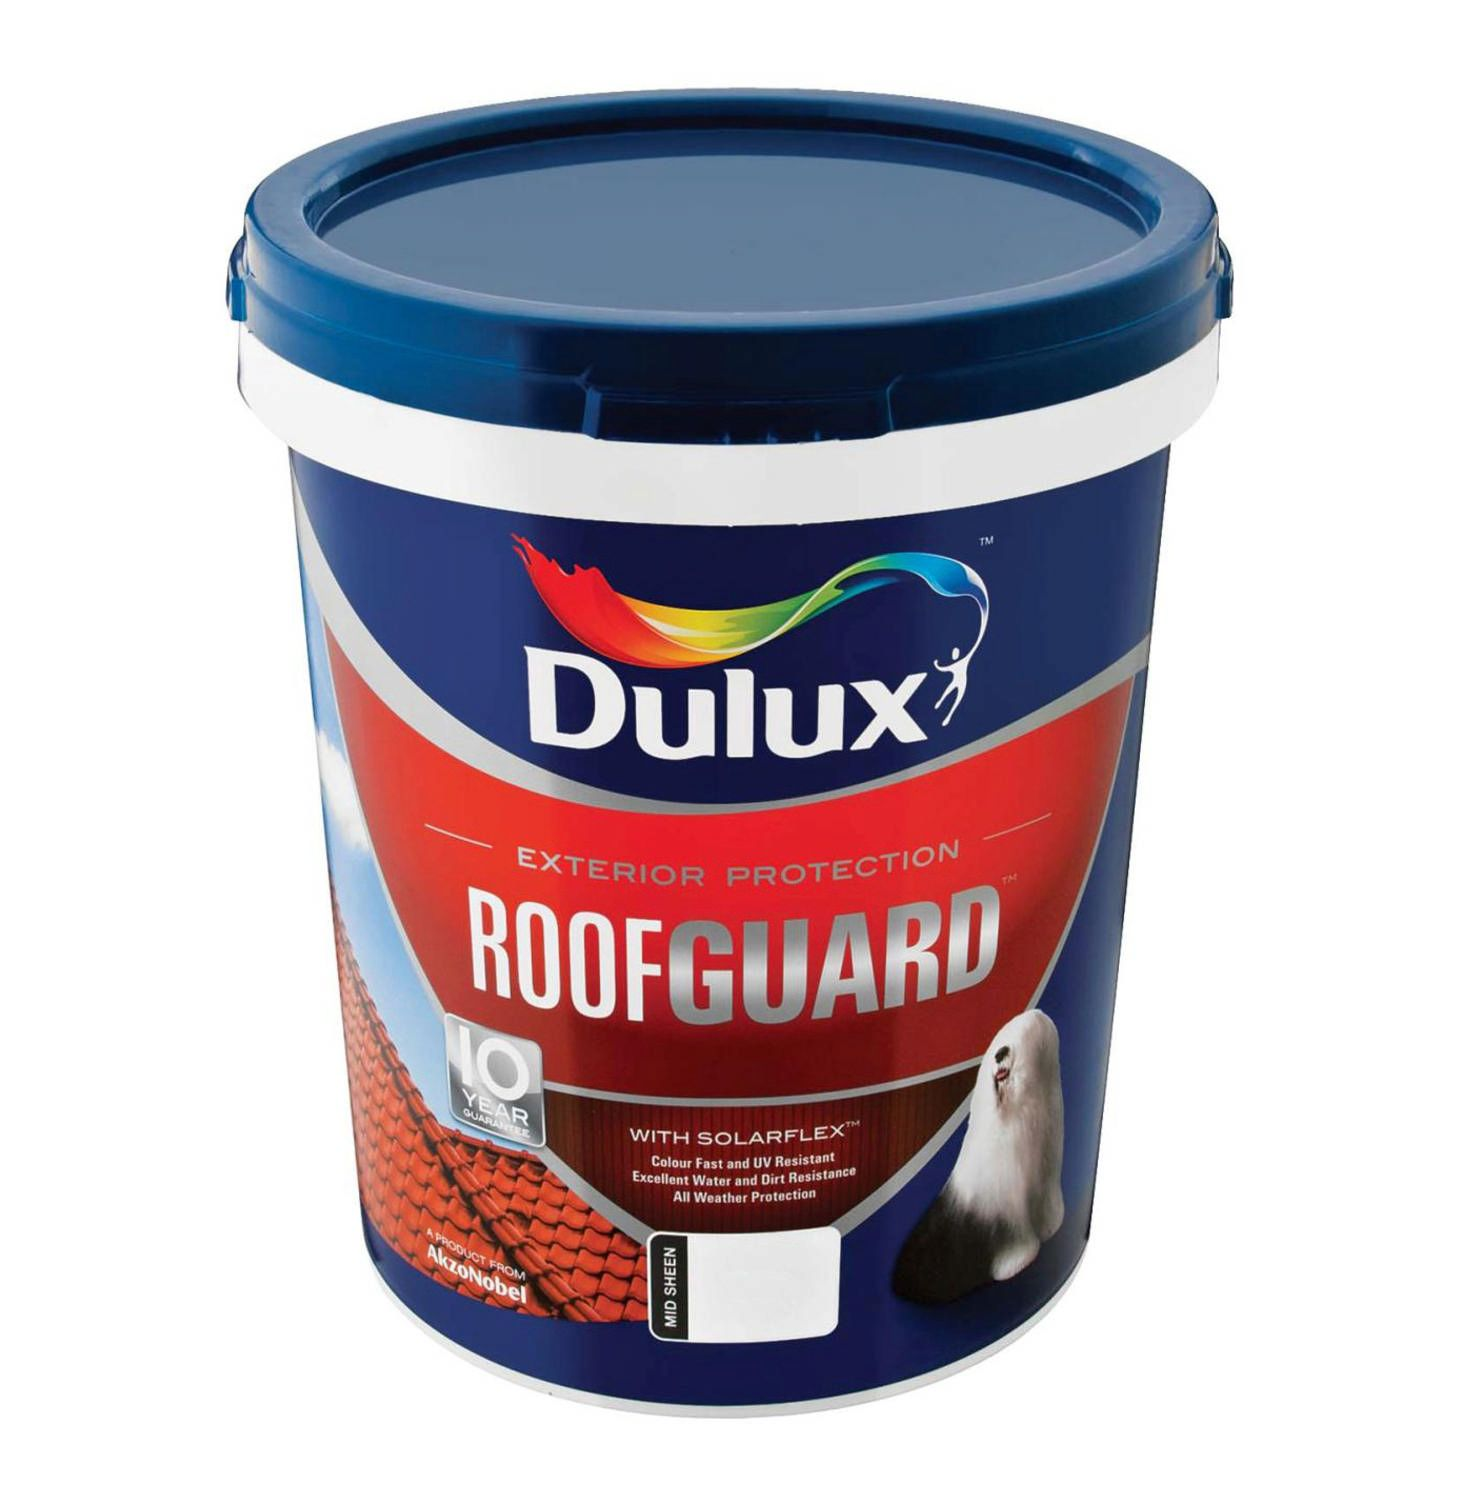 Makro Hogar Dulux 20l Roofguard Lowest Prices Specials Online Makro